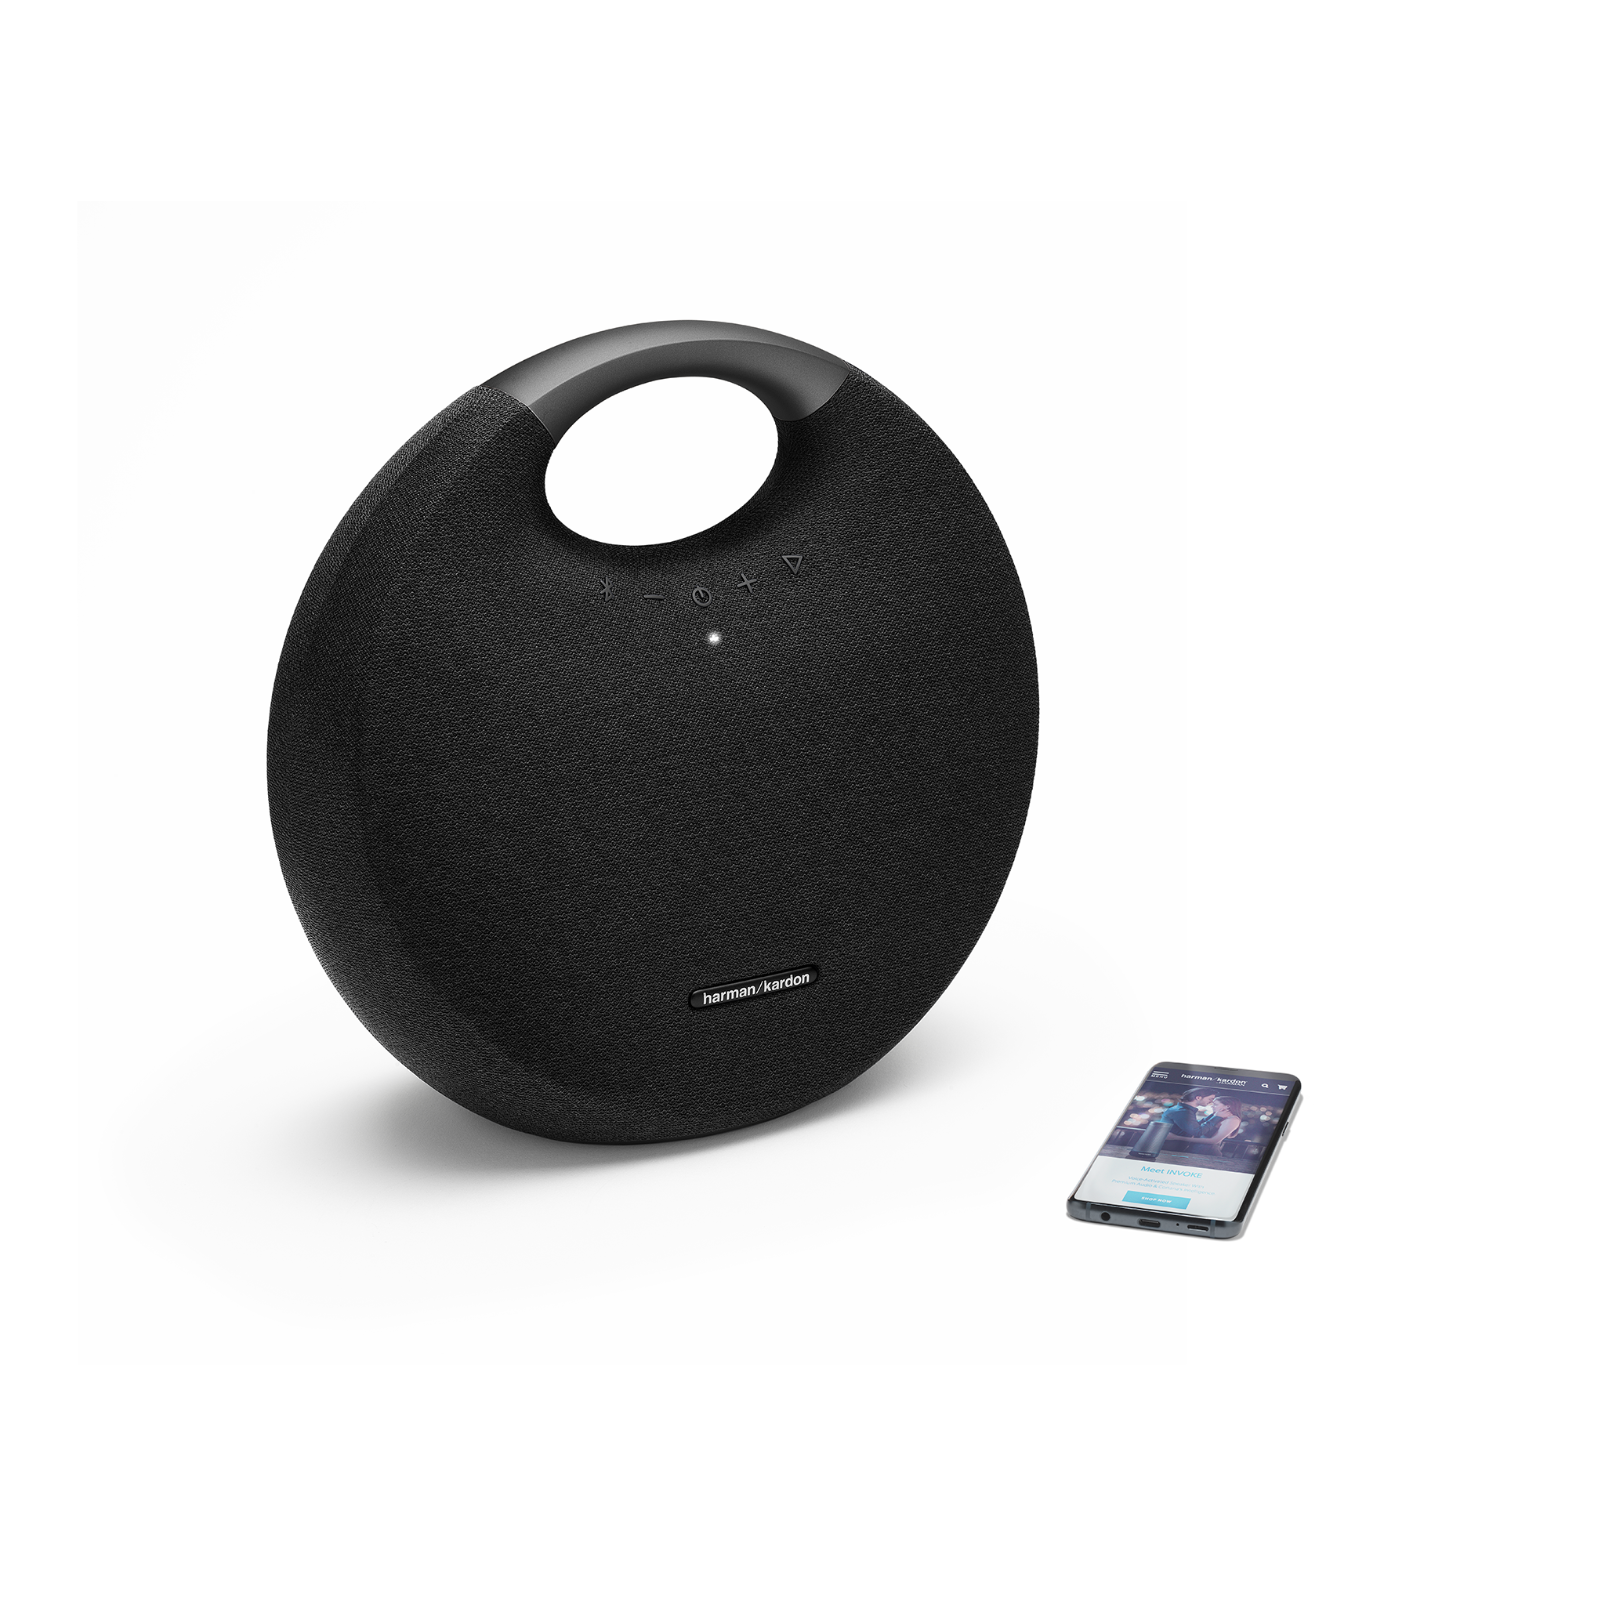 Onyx Studio 6 - Black - Portable Bluetooth speaker - Detailshot 1